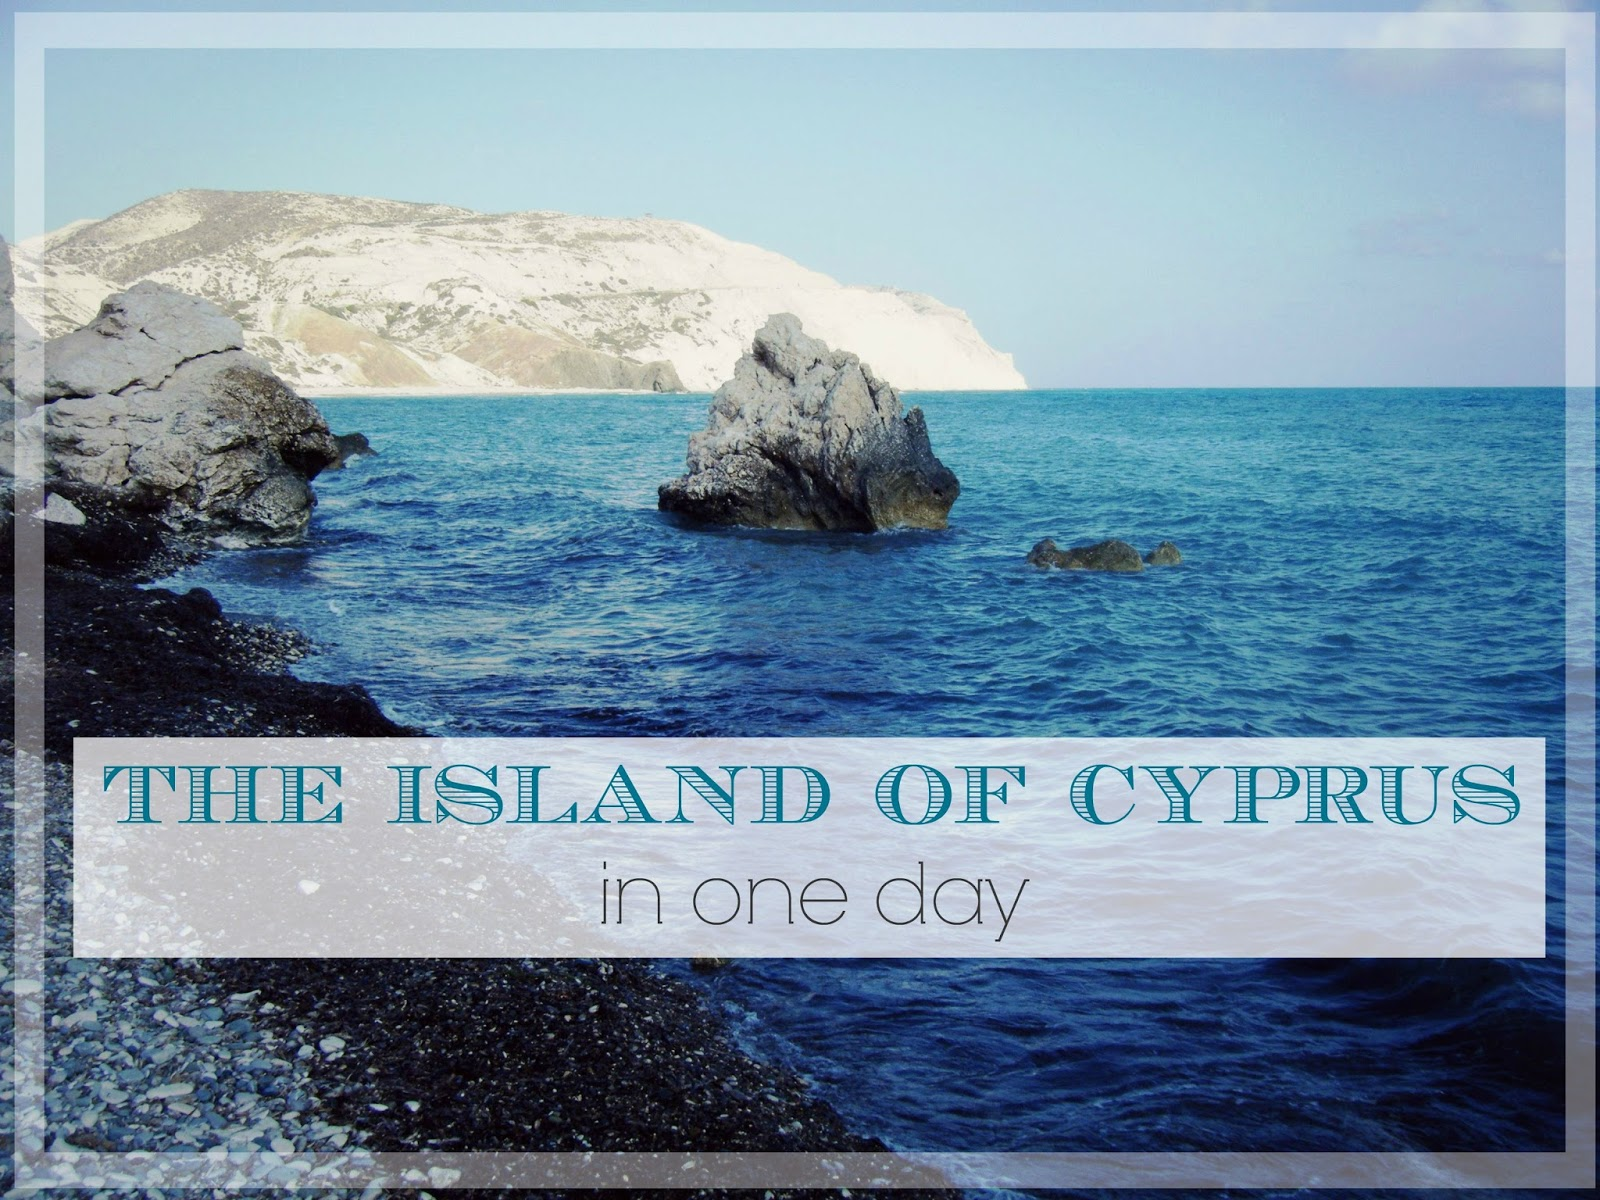 http://sussysmediterraneantreasures.blogspot.de/2015/09/cyprus-in-one-day-only.html